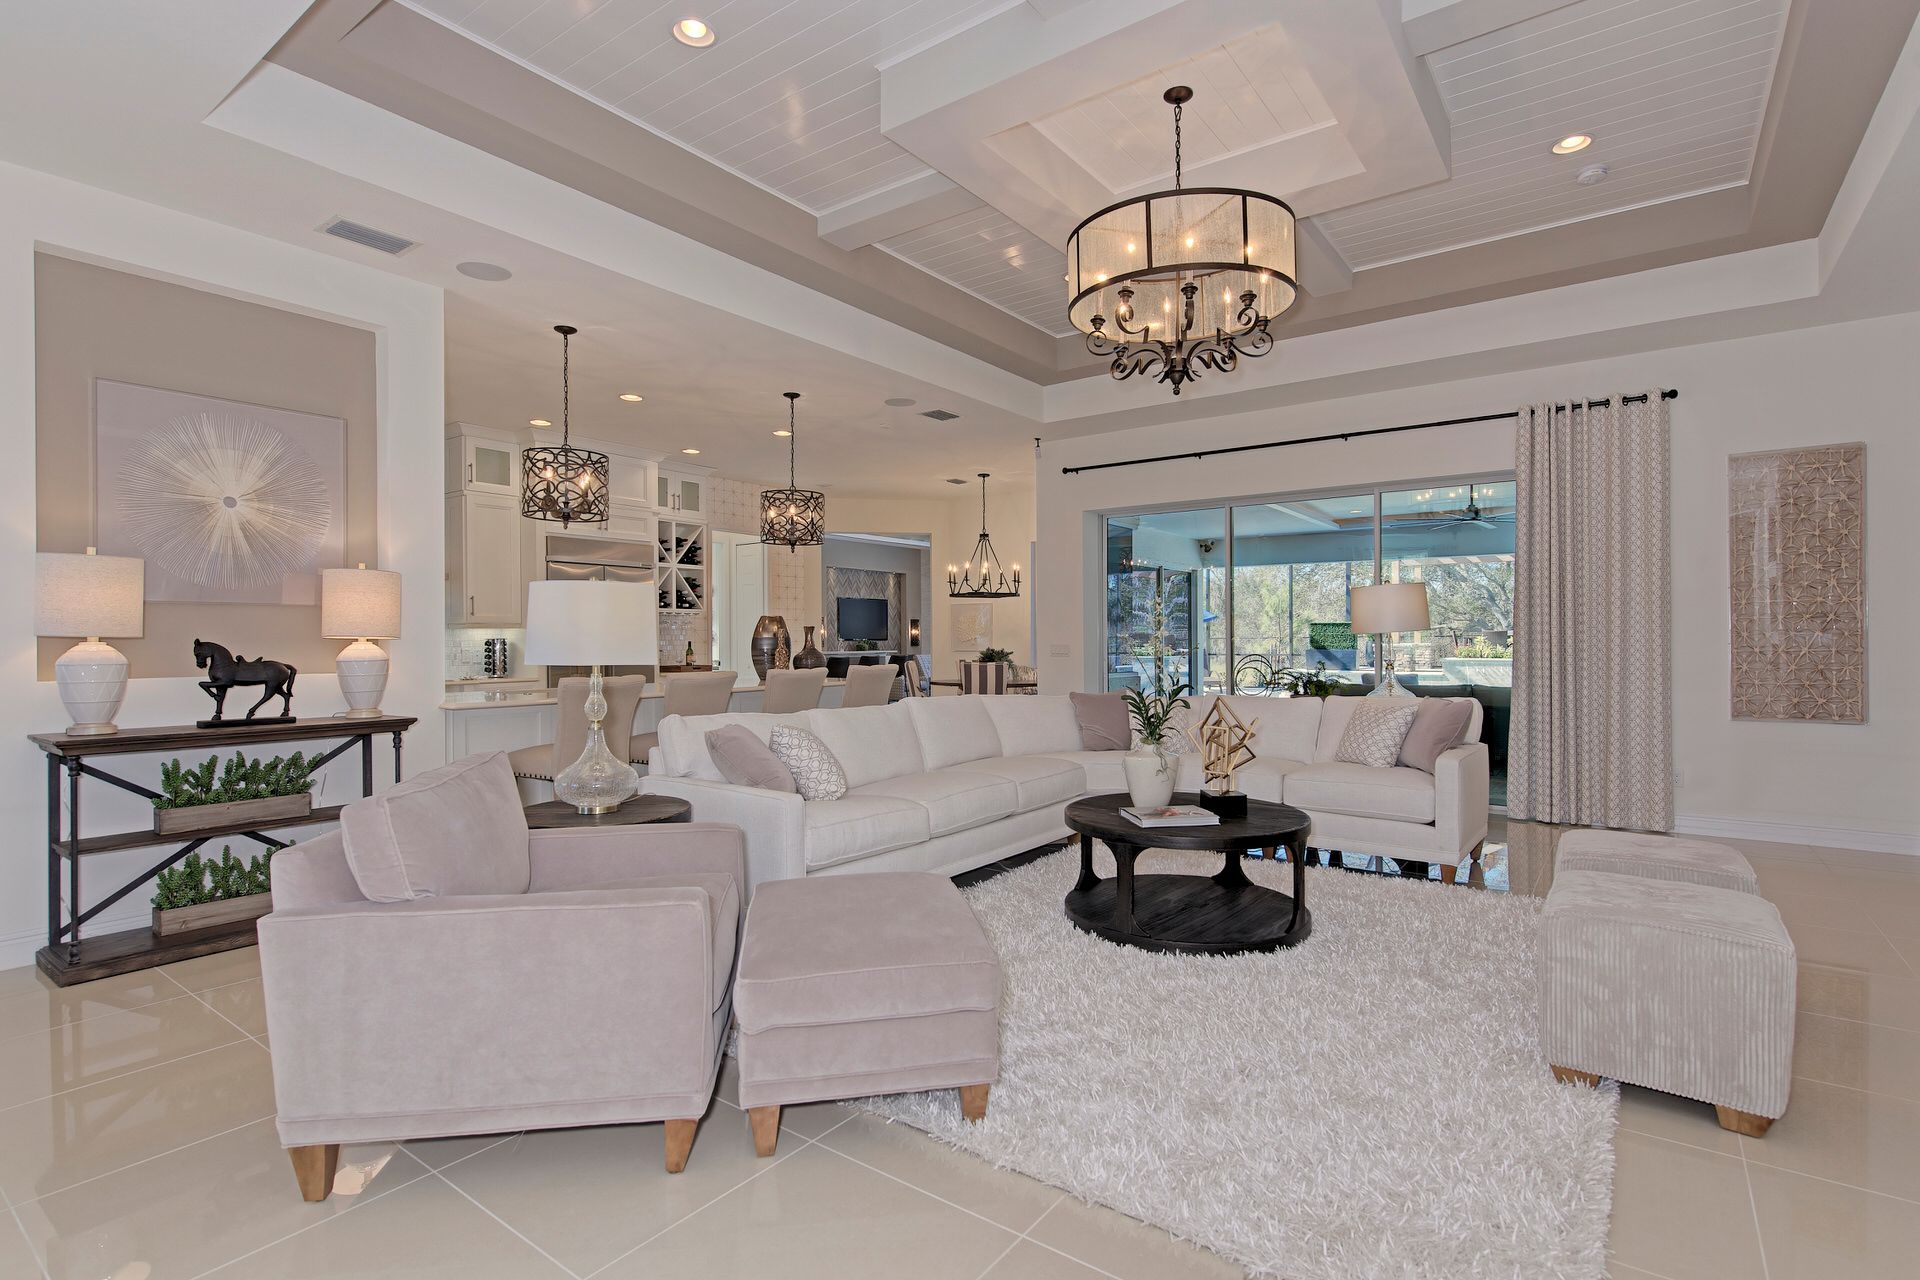 Living Area featured in the Santa Maria By Medallion Home in Sarasota-Bradenton, FL